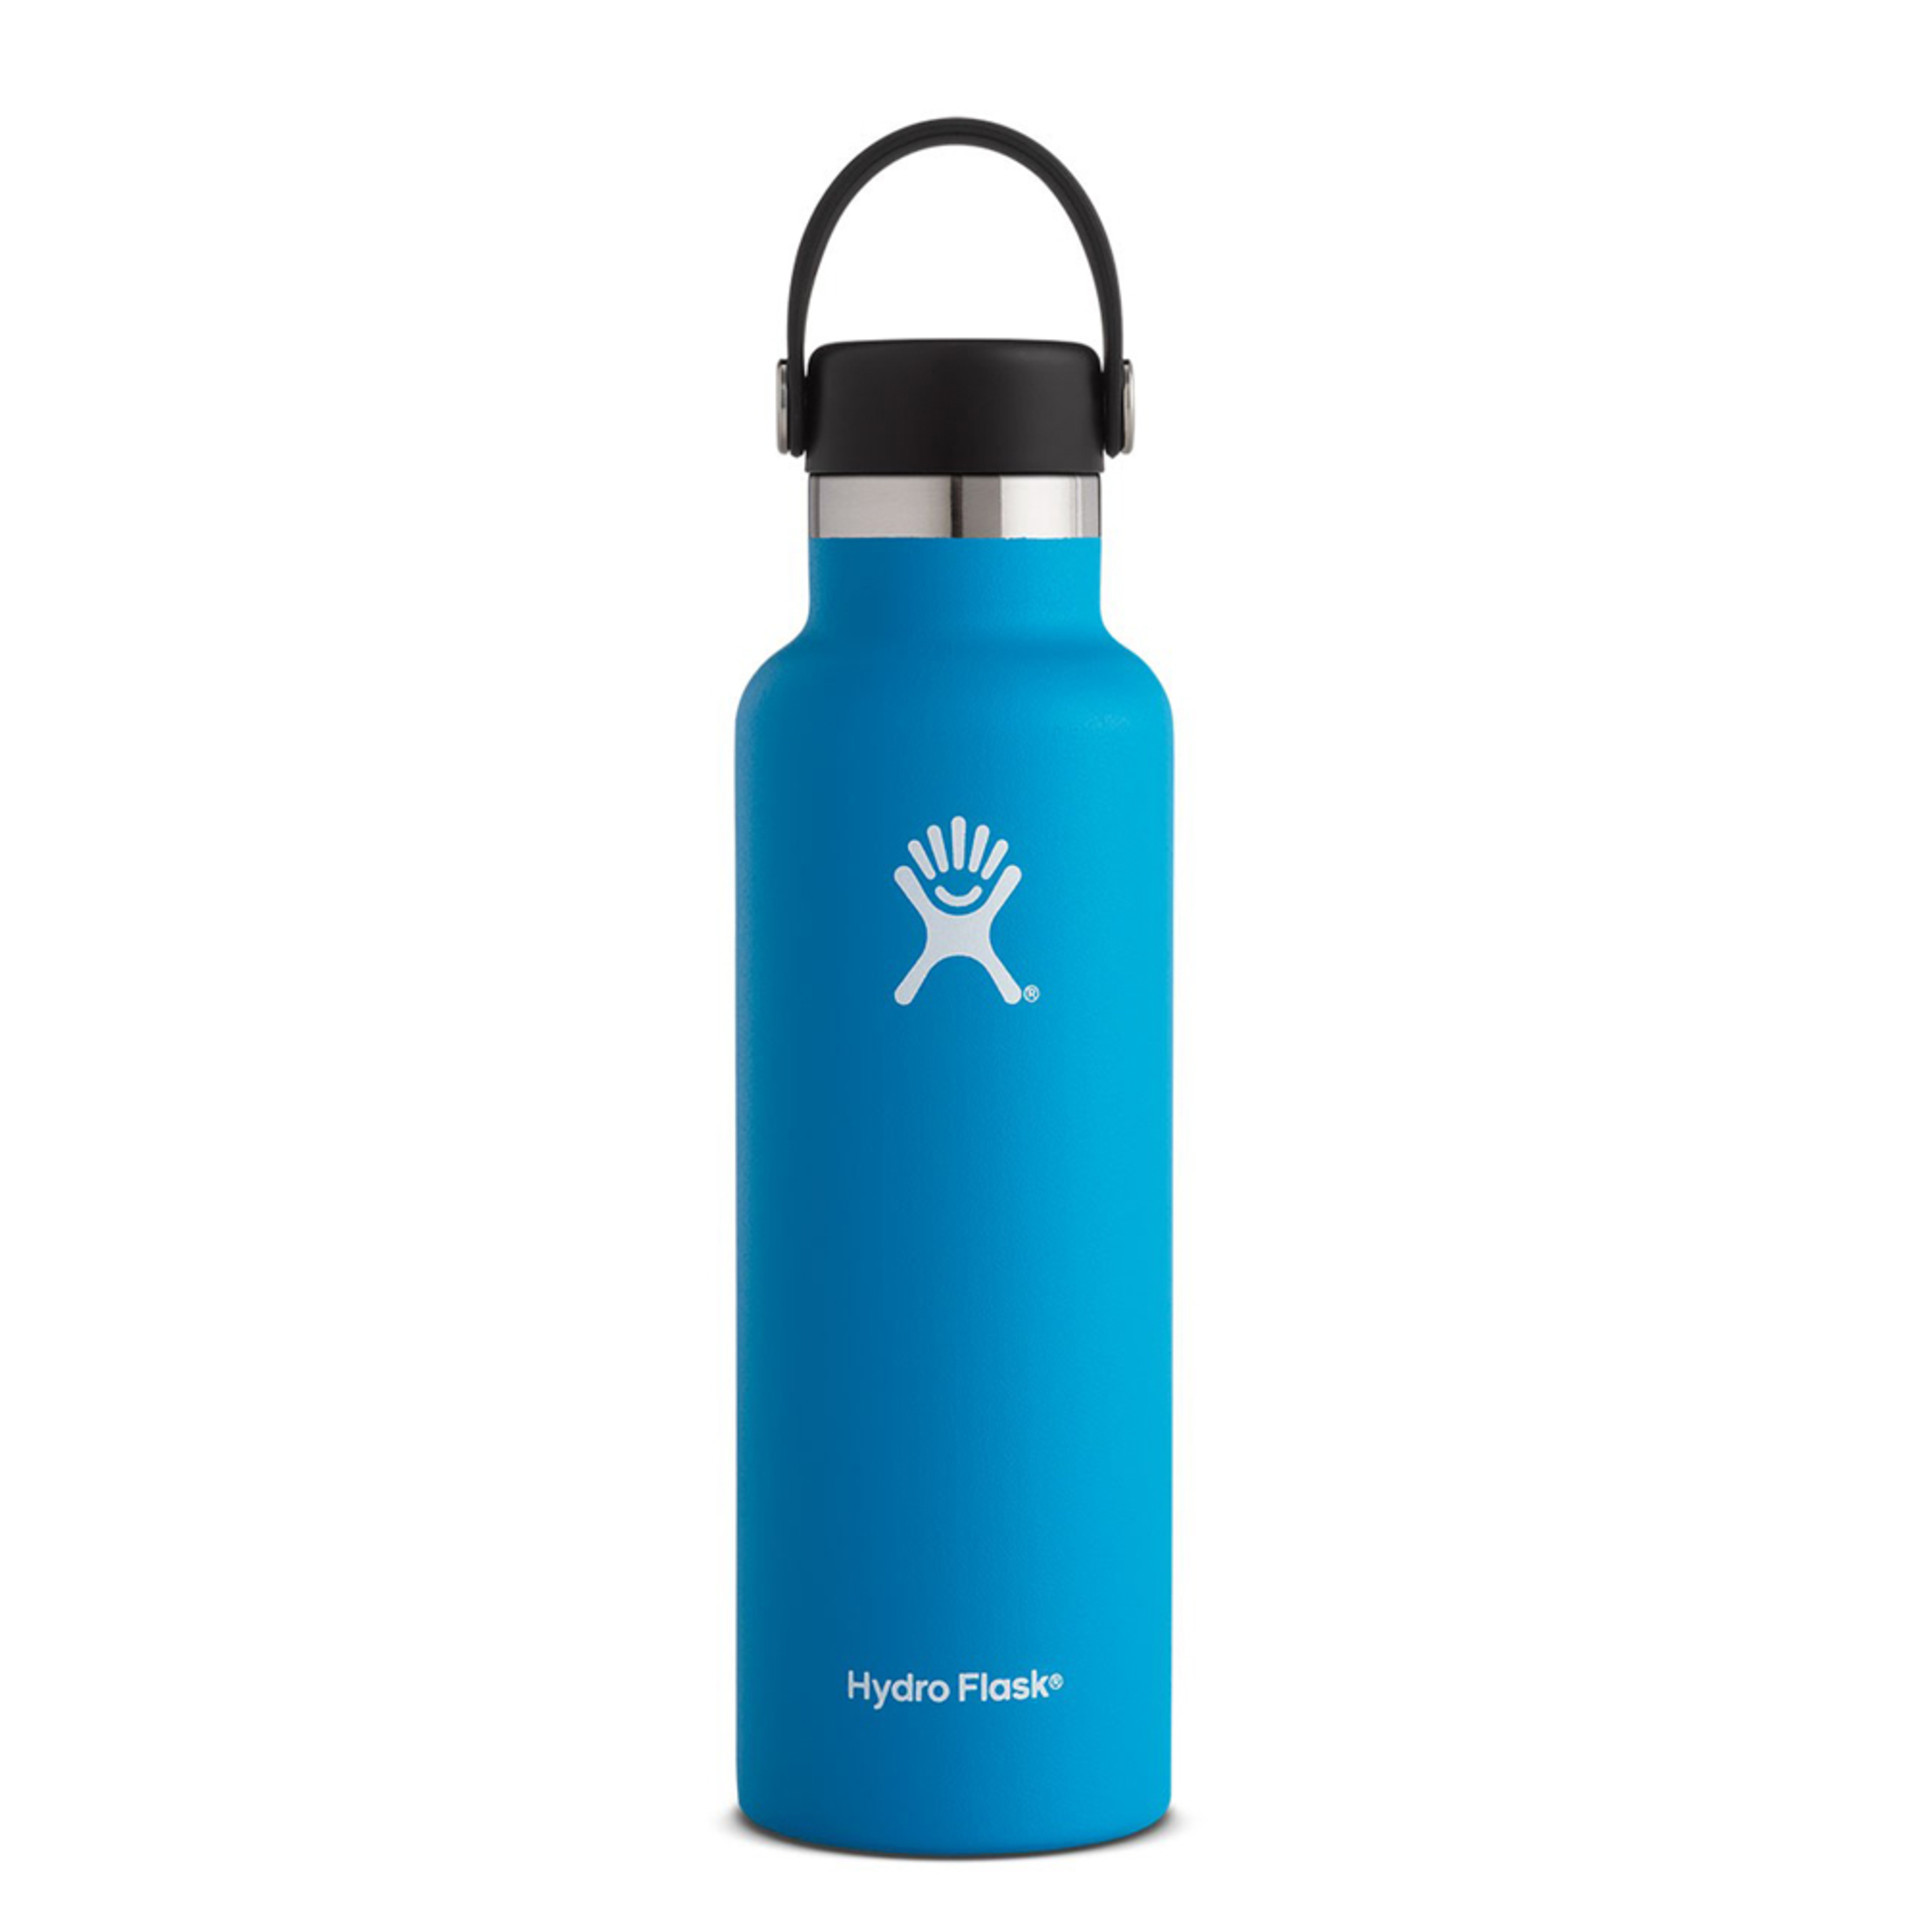 Hydro Flask Water Bottle Pacific